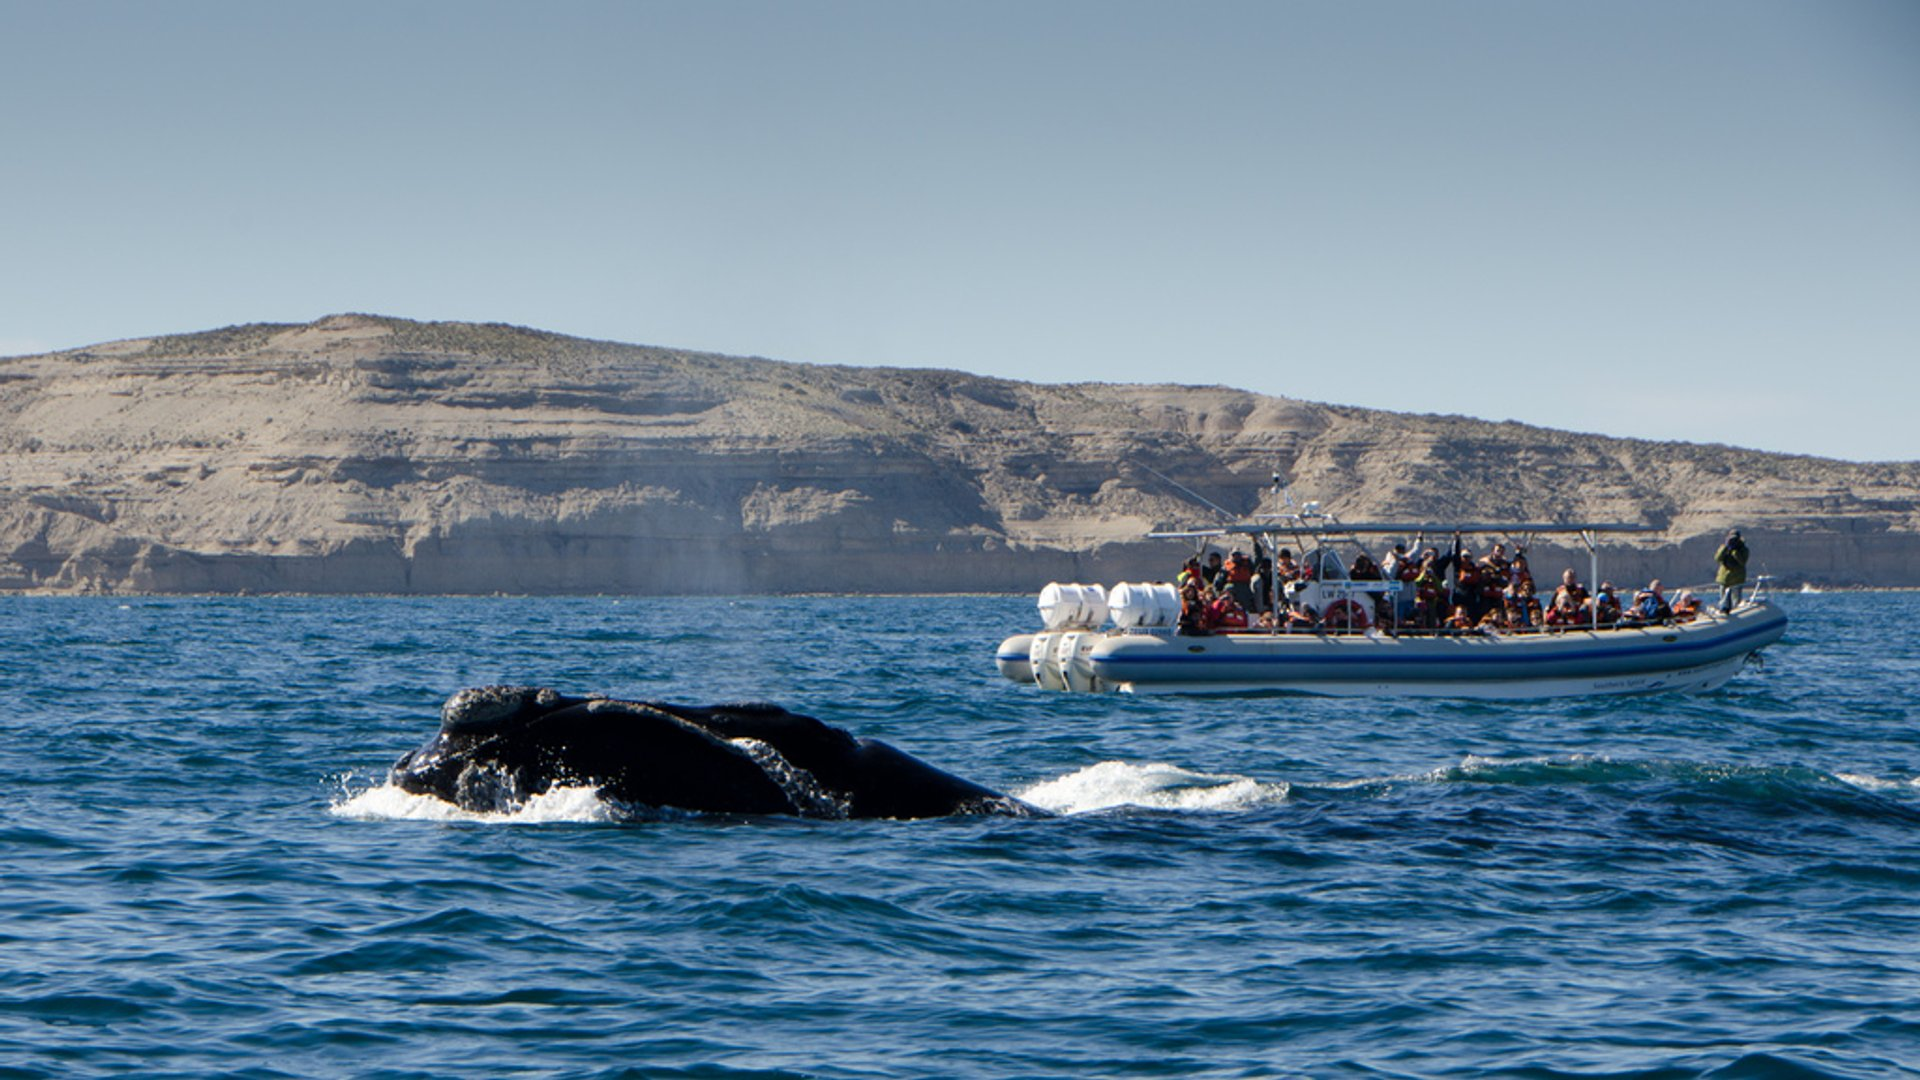 Southern Right Whale Watching in Argentina 2020 - Best Time